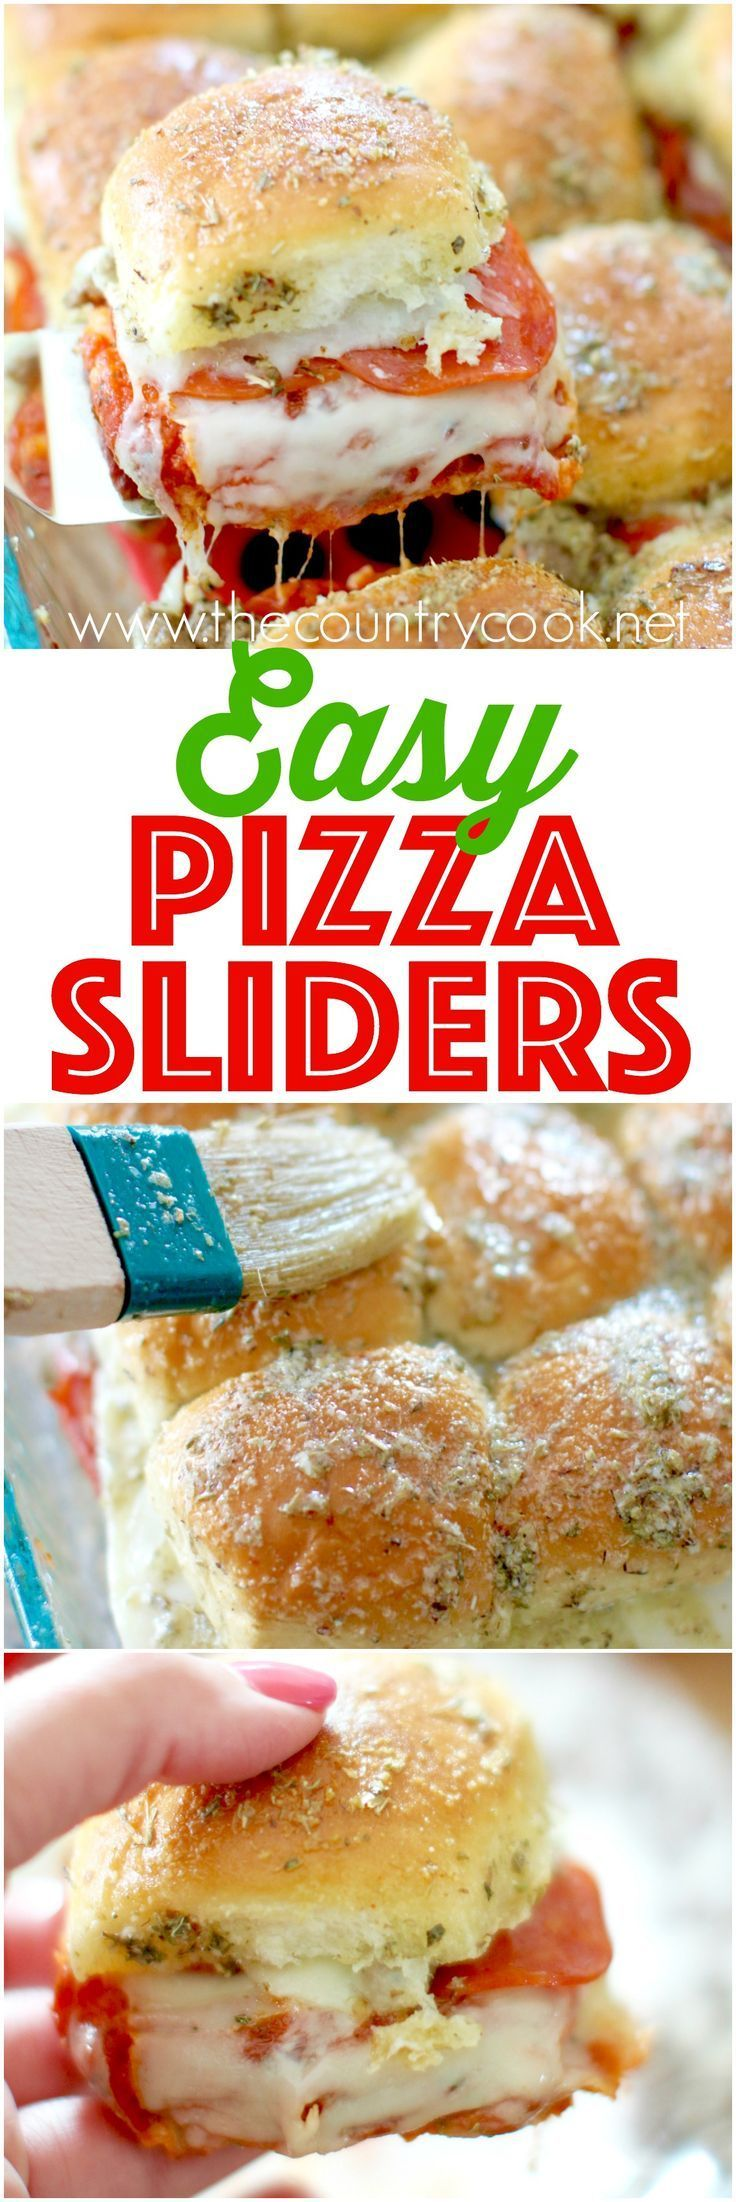 Pizza Sliders filled with gooey cheese, pepperoni and sauce